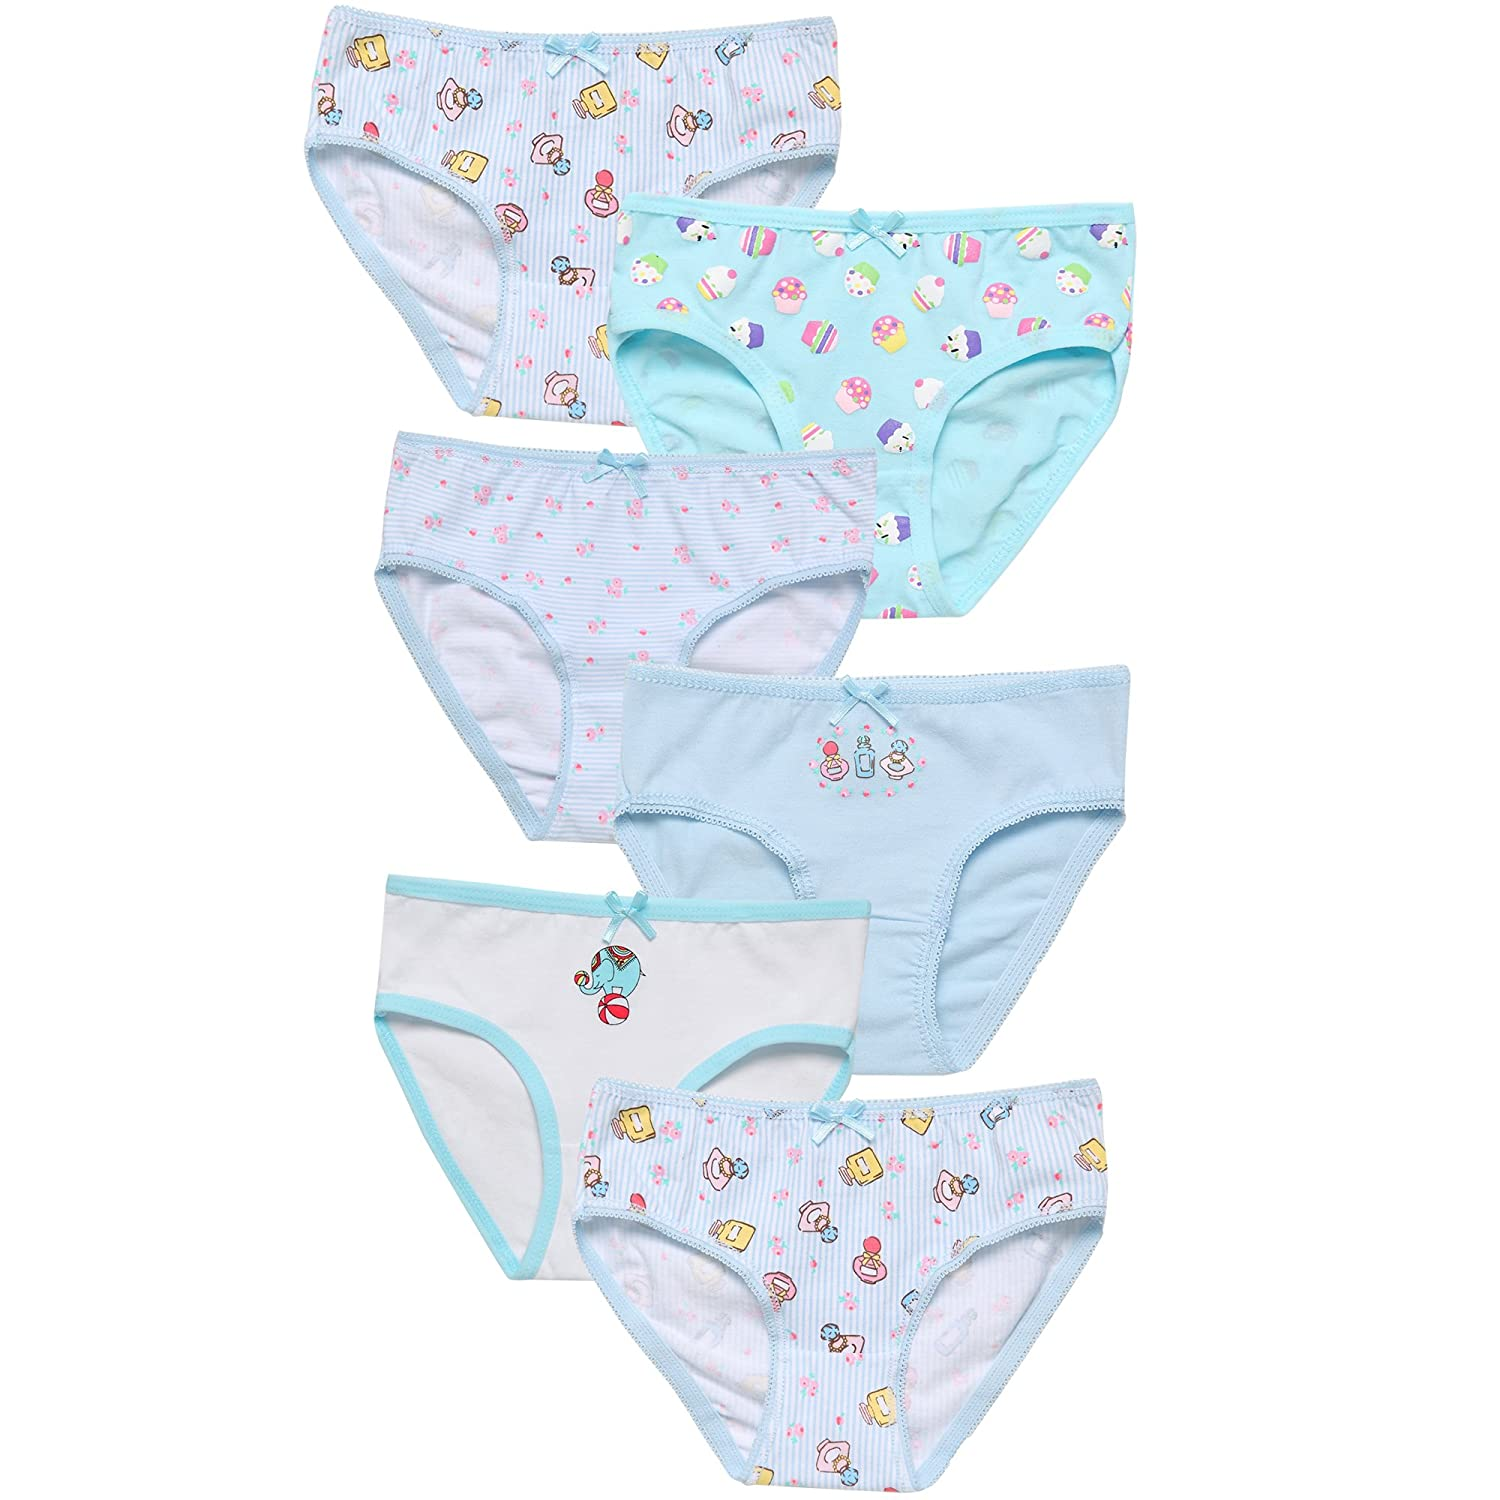 6-Pack YFIT Toddler Girls Brief,Little Kids Minnie Underwear